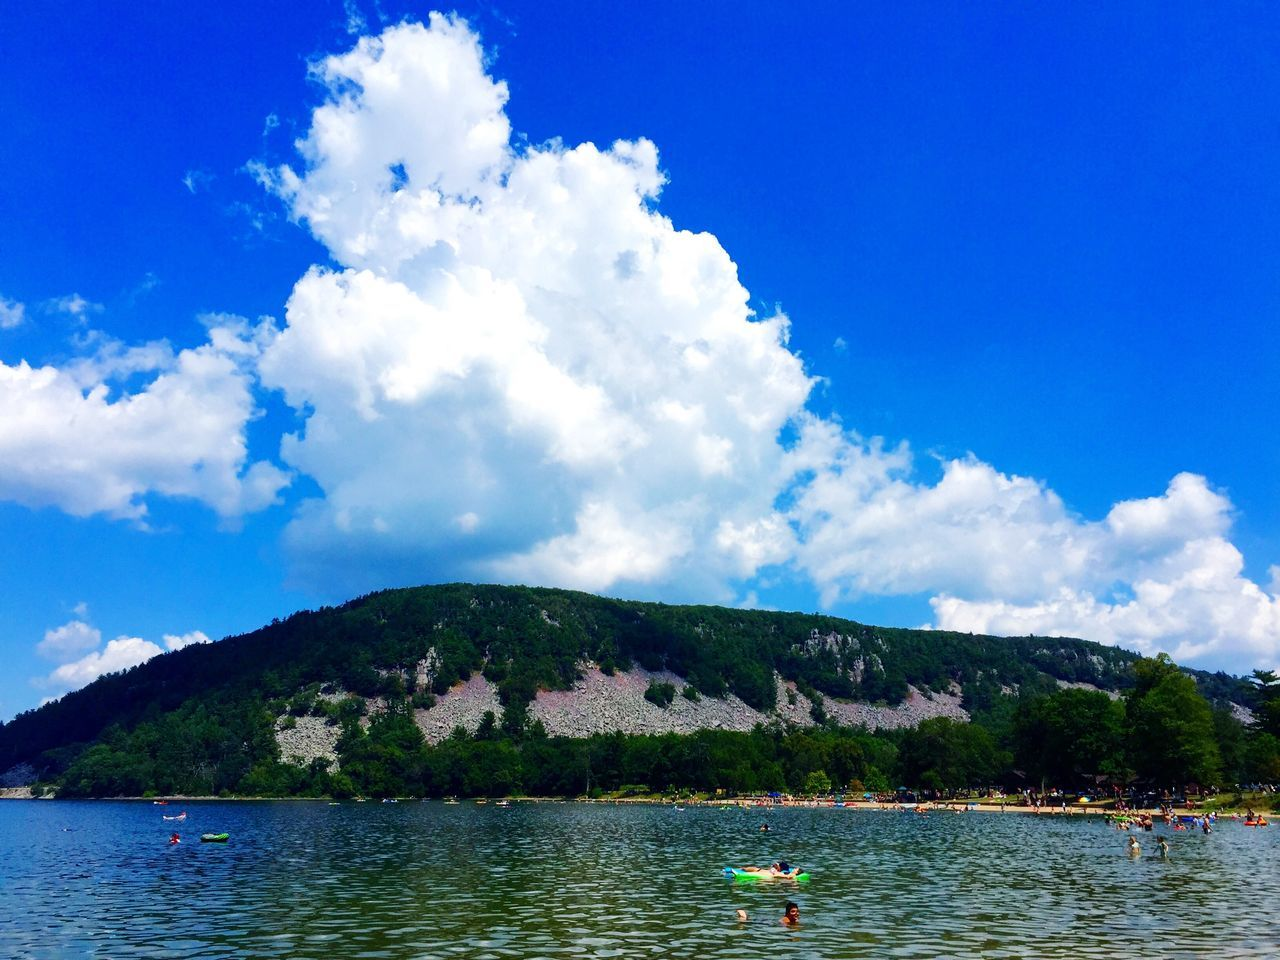 Beauty In Nature Blue Cloud Cloud - Sky Cloudy Day Idyllic Lake Landscape Mountain Mountain Range Nature Non Urban Scene Non-urban Scene Outdoors Remote Rippled Scenics Sky Tourism Tranquil Scene Tranquility Travel Destinations Vacations Water